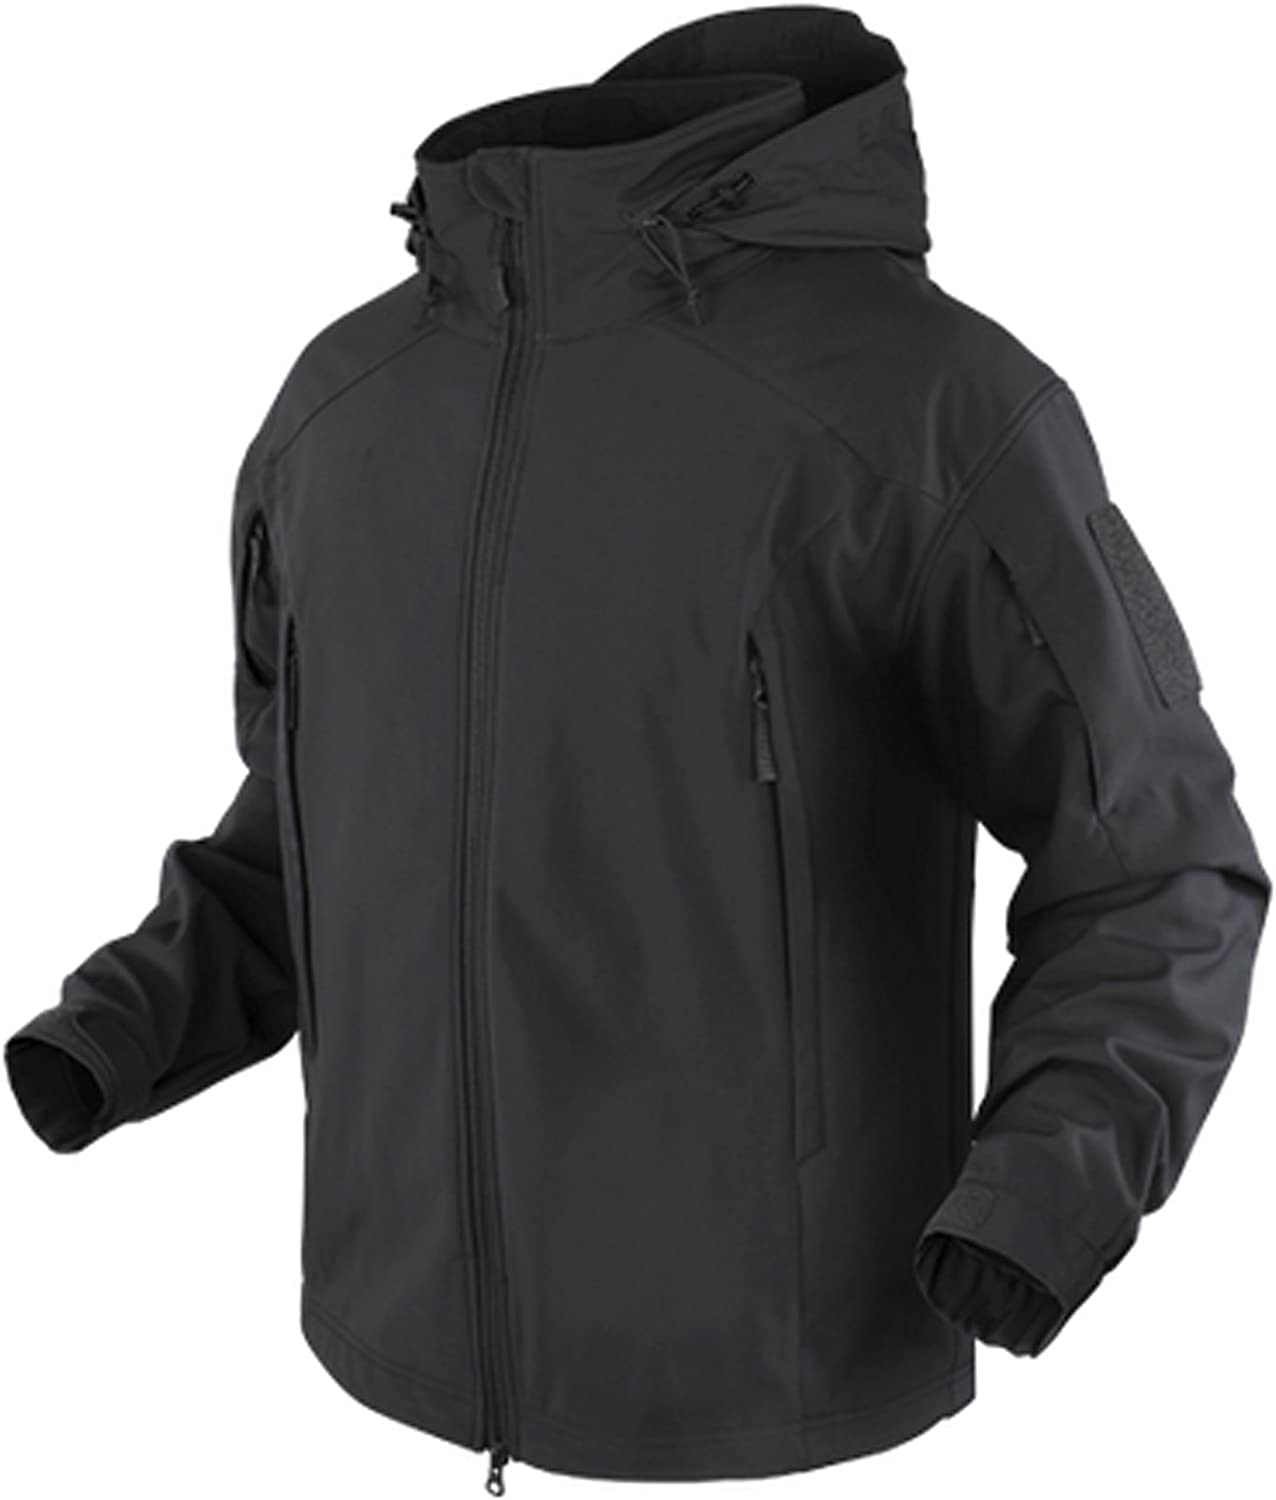 Element Softshell Jacket At Super-cheap the price